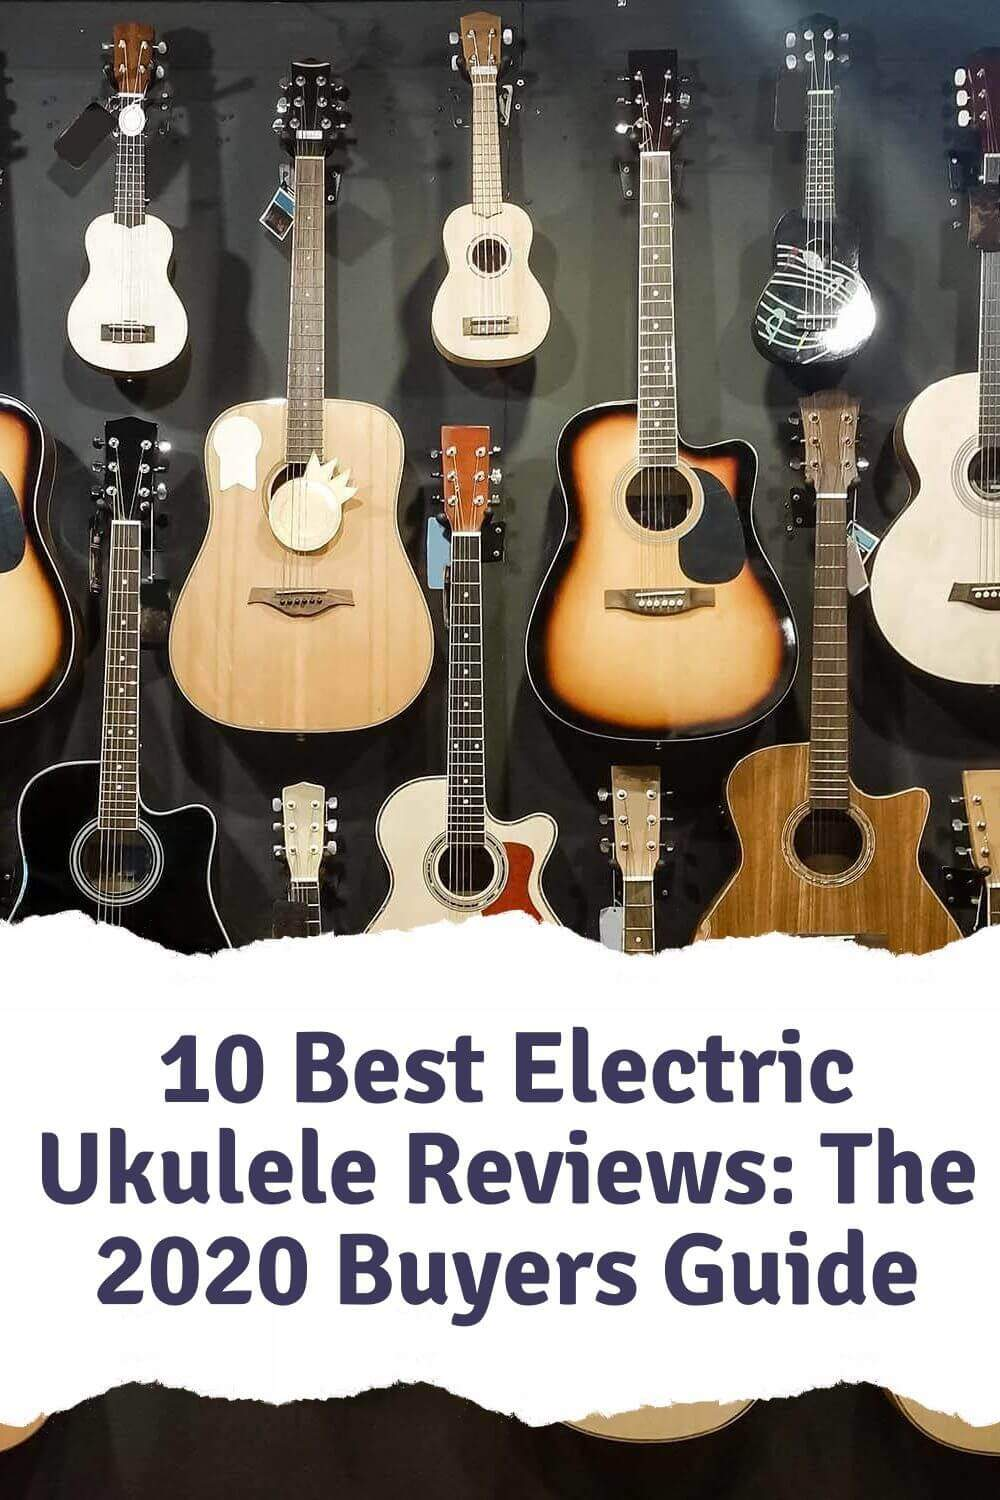 10 Best Electric Ukulele Reviews The 2020 Buyers Guide